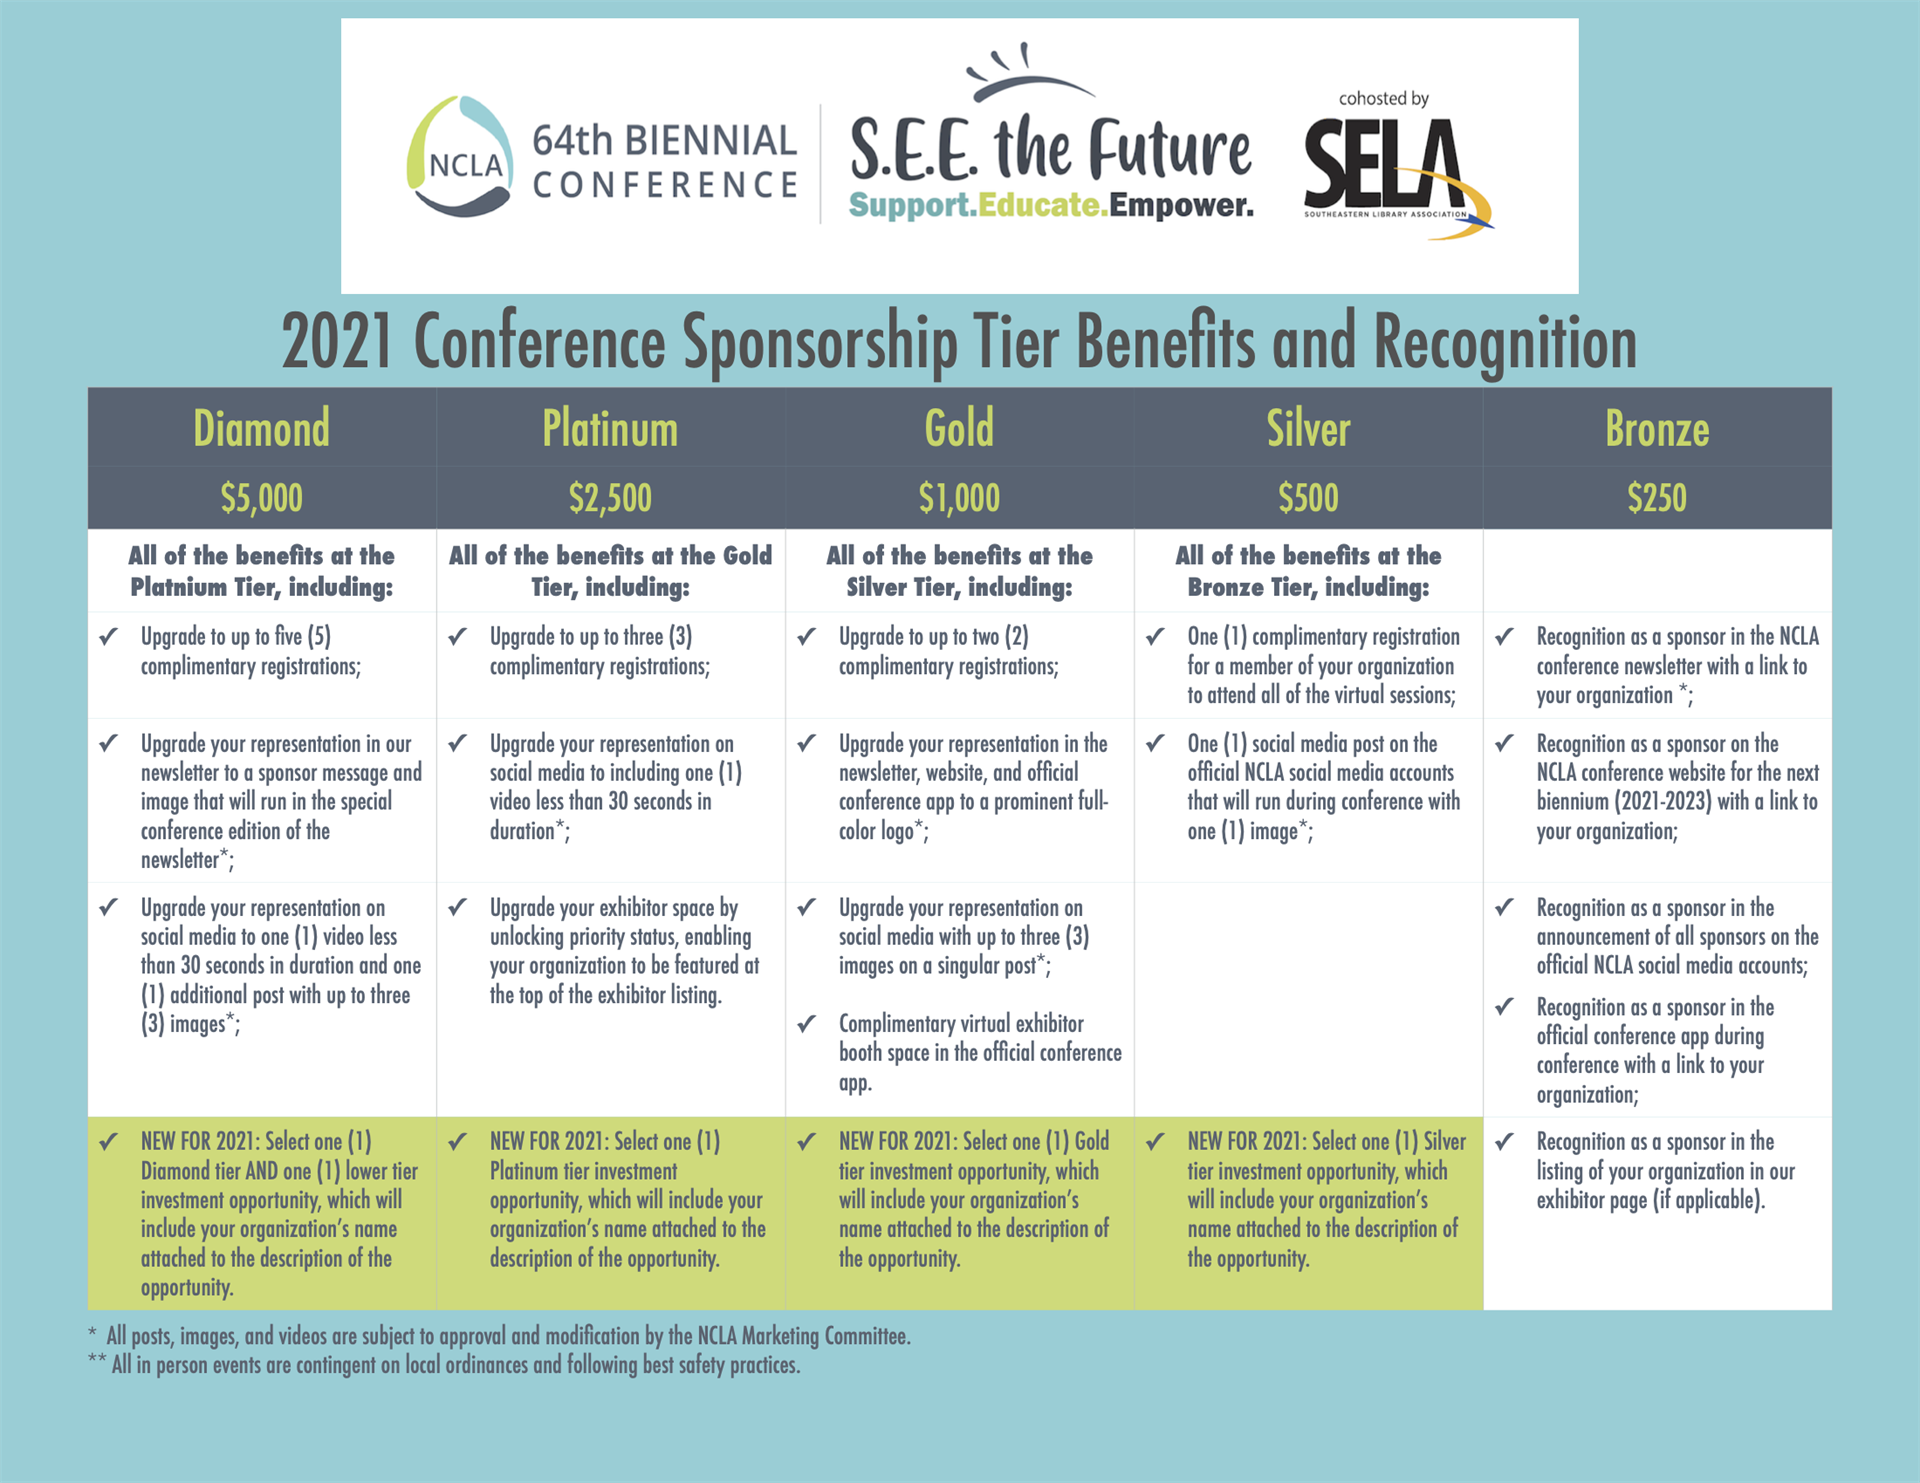 2021 conference sponsorship benefits